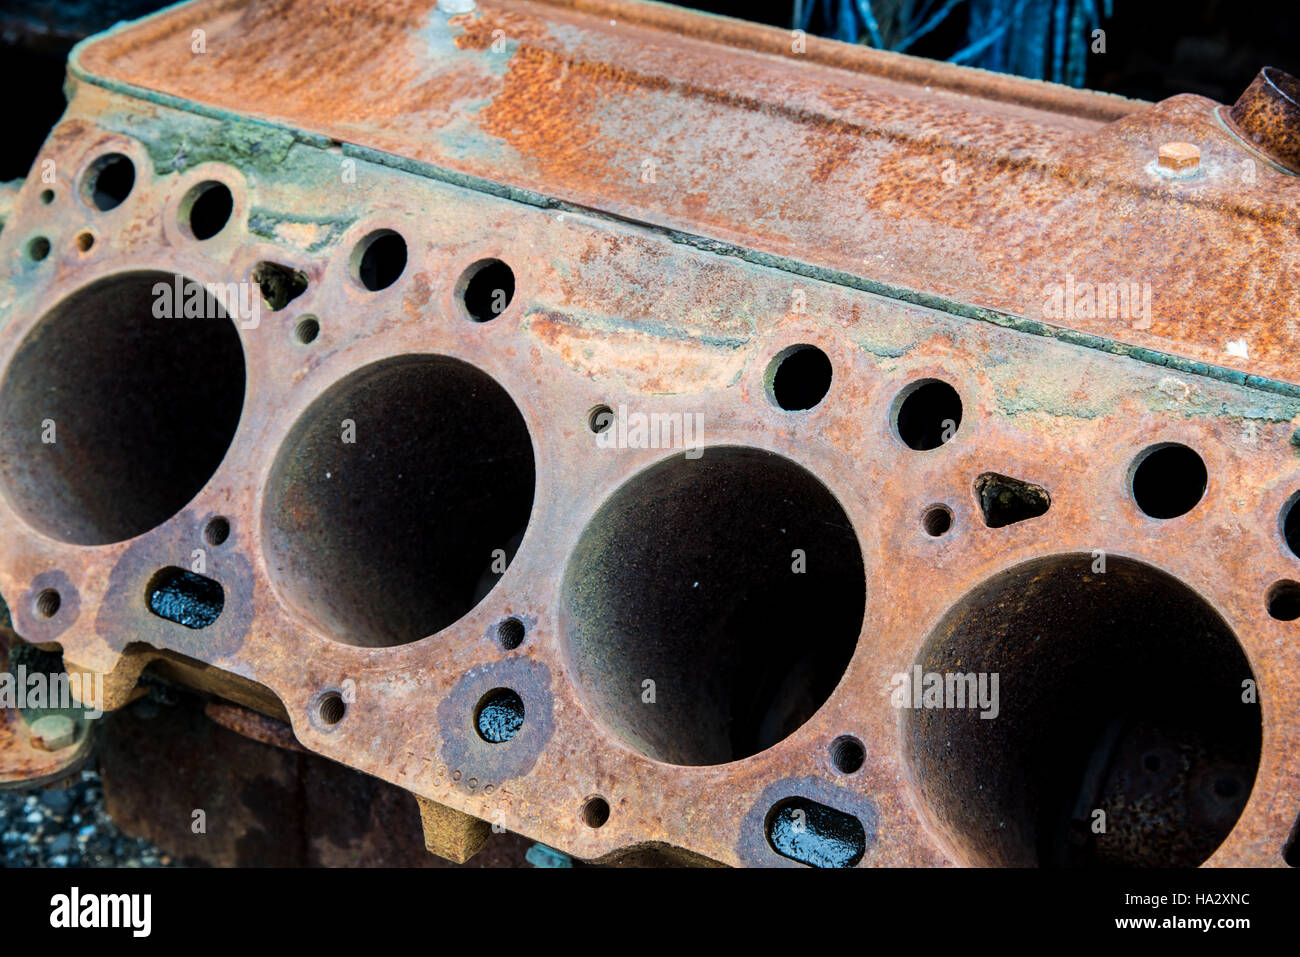 Rusted Vintage Car Parts Stock Photo, Royalty Free Image: 126684024 ...